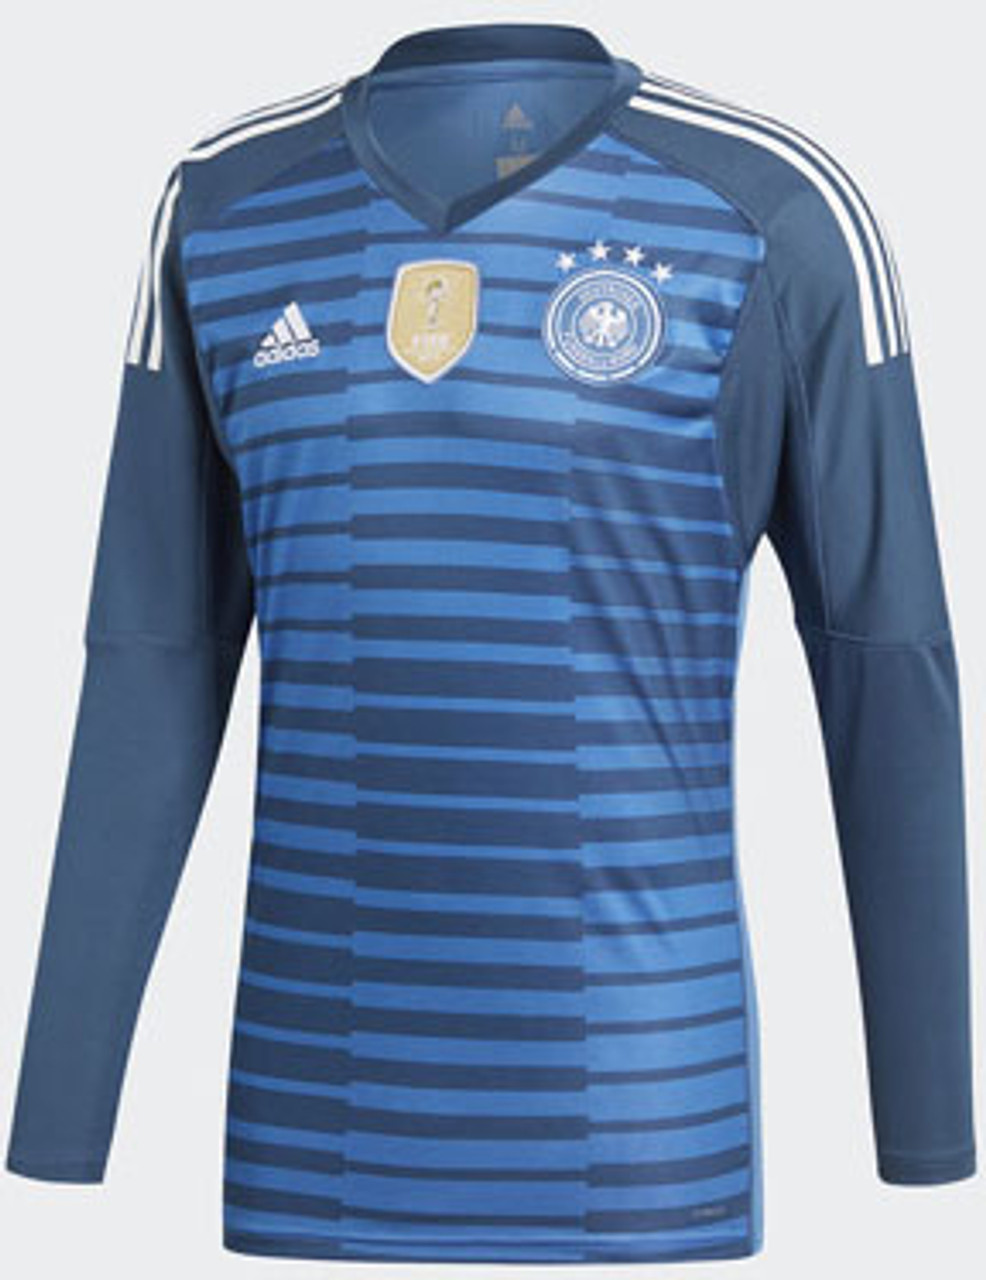 ADIDAS GERMANY 2018 WORLD CUP G/K JERSEY BLUE